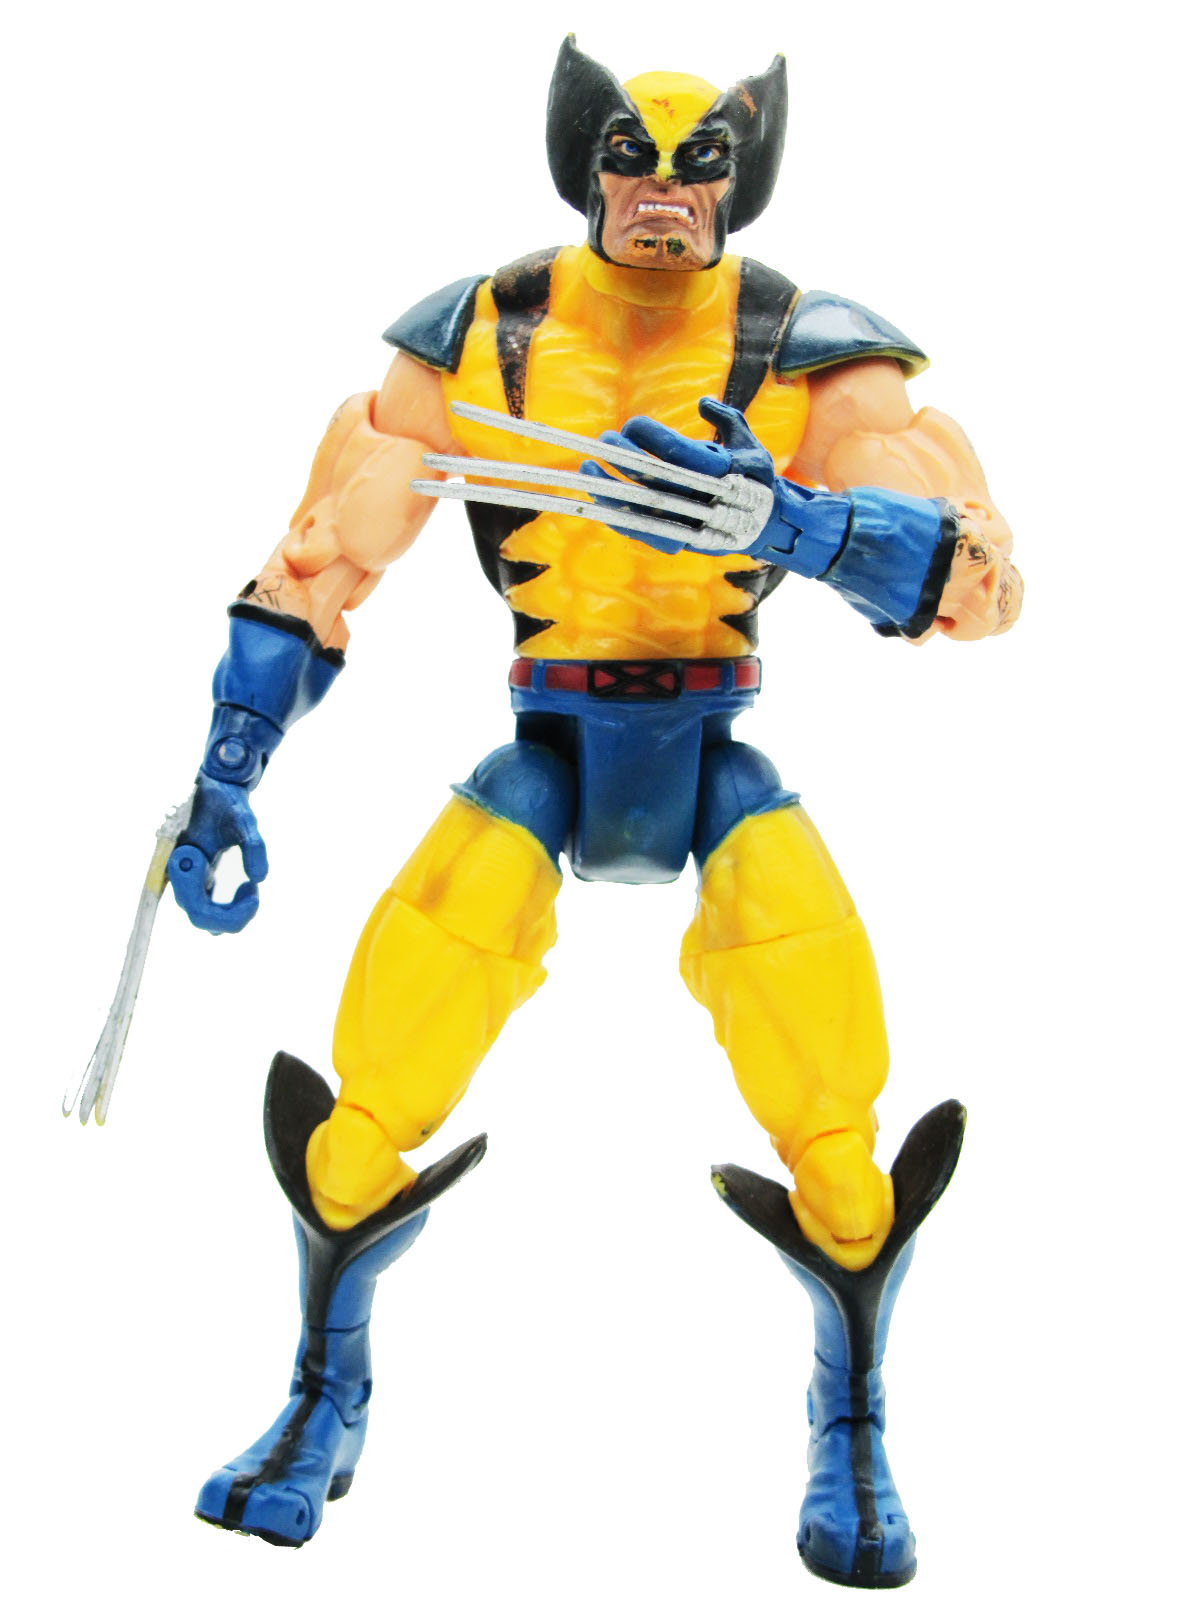 Marvel Legends Series 3 Wolverine Complete